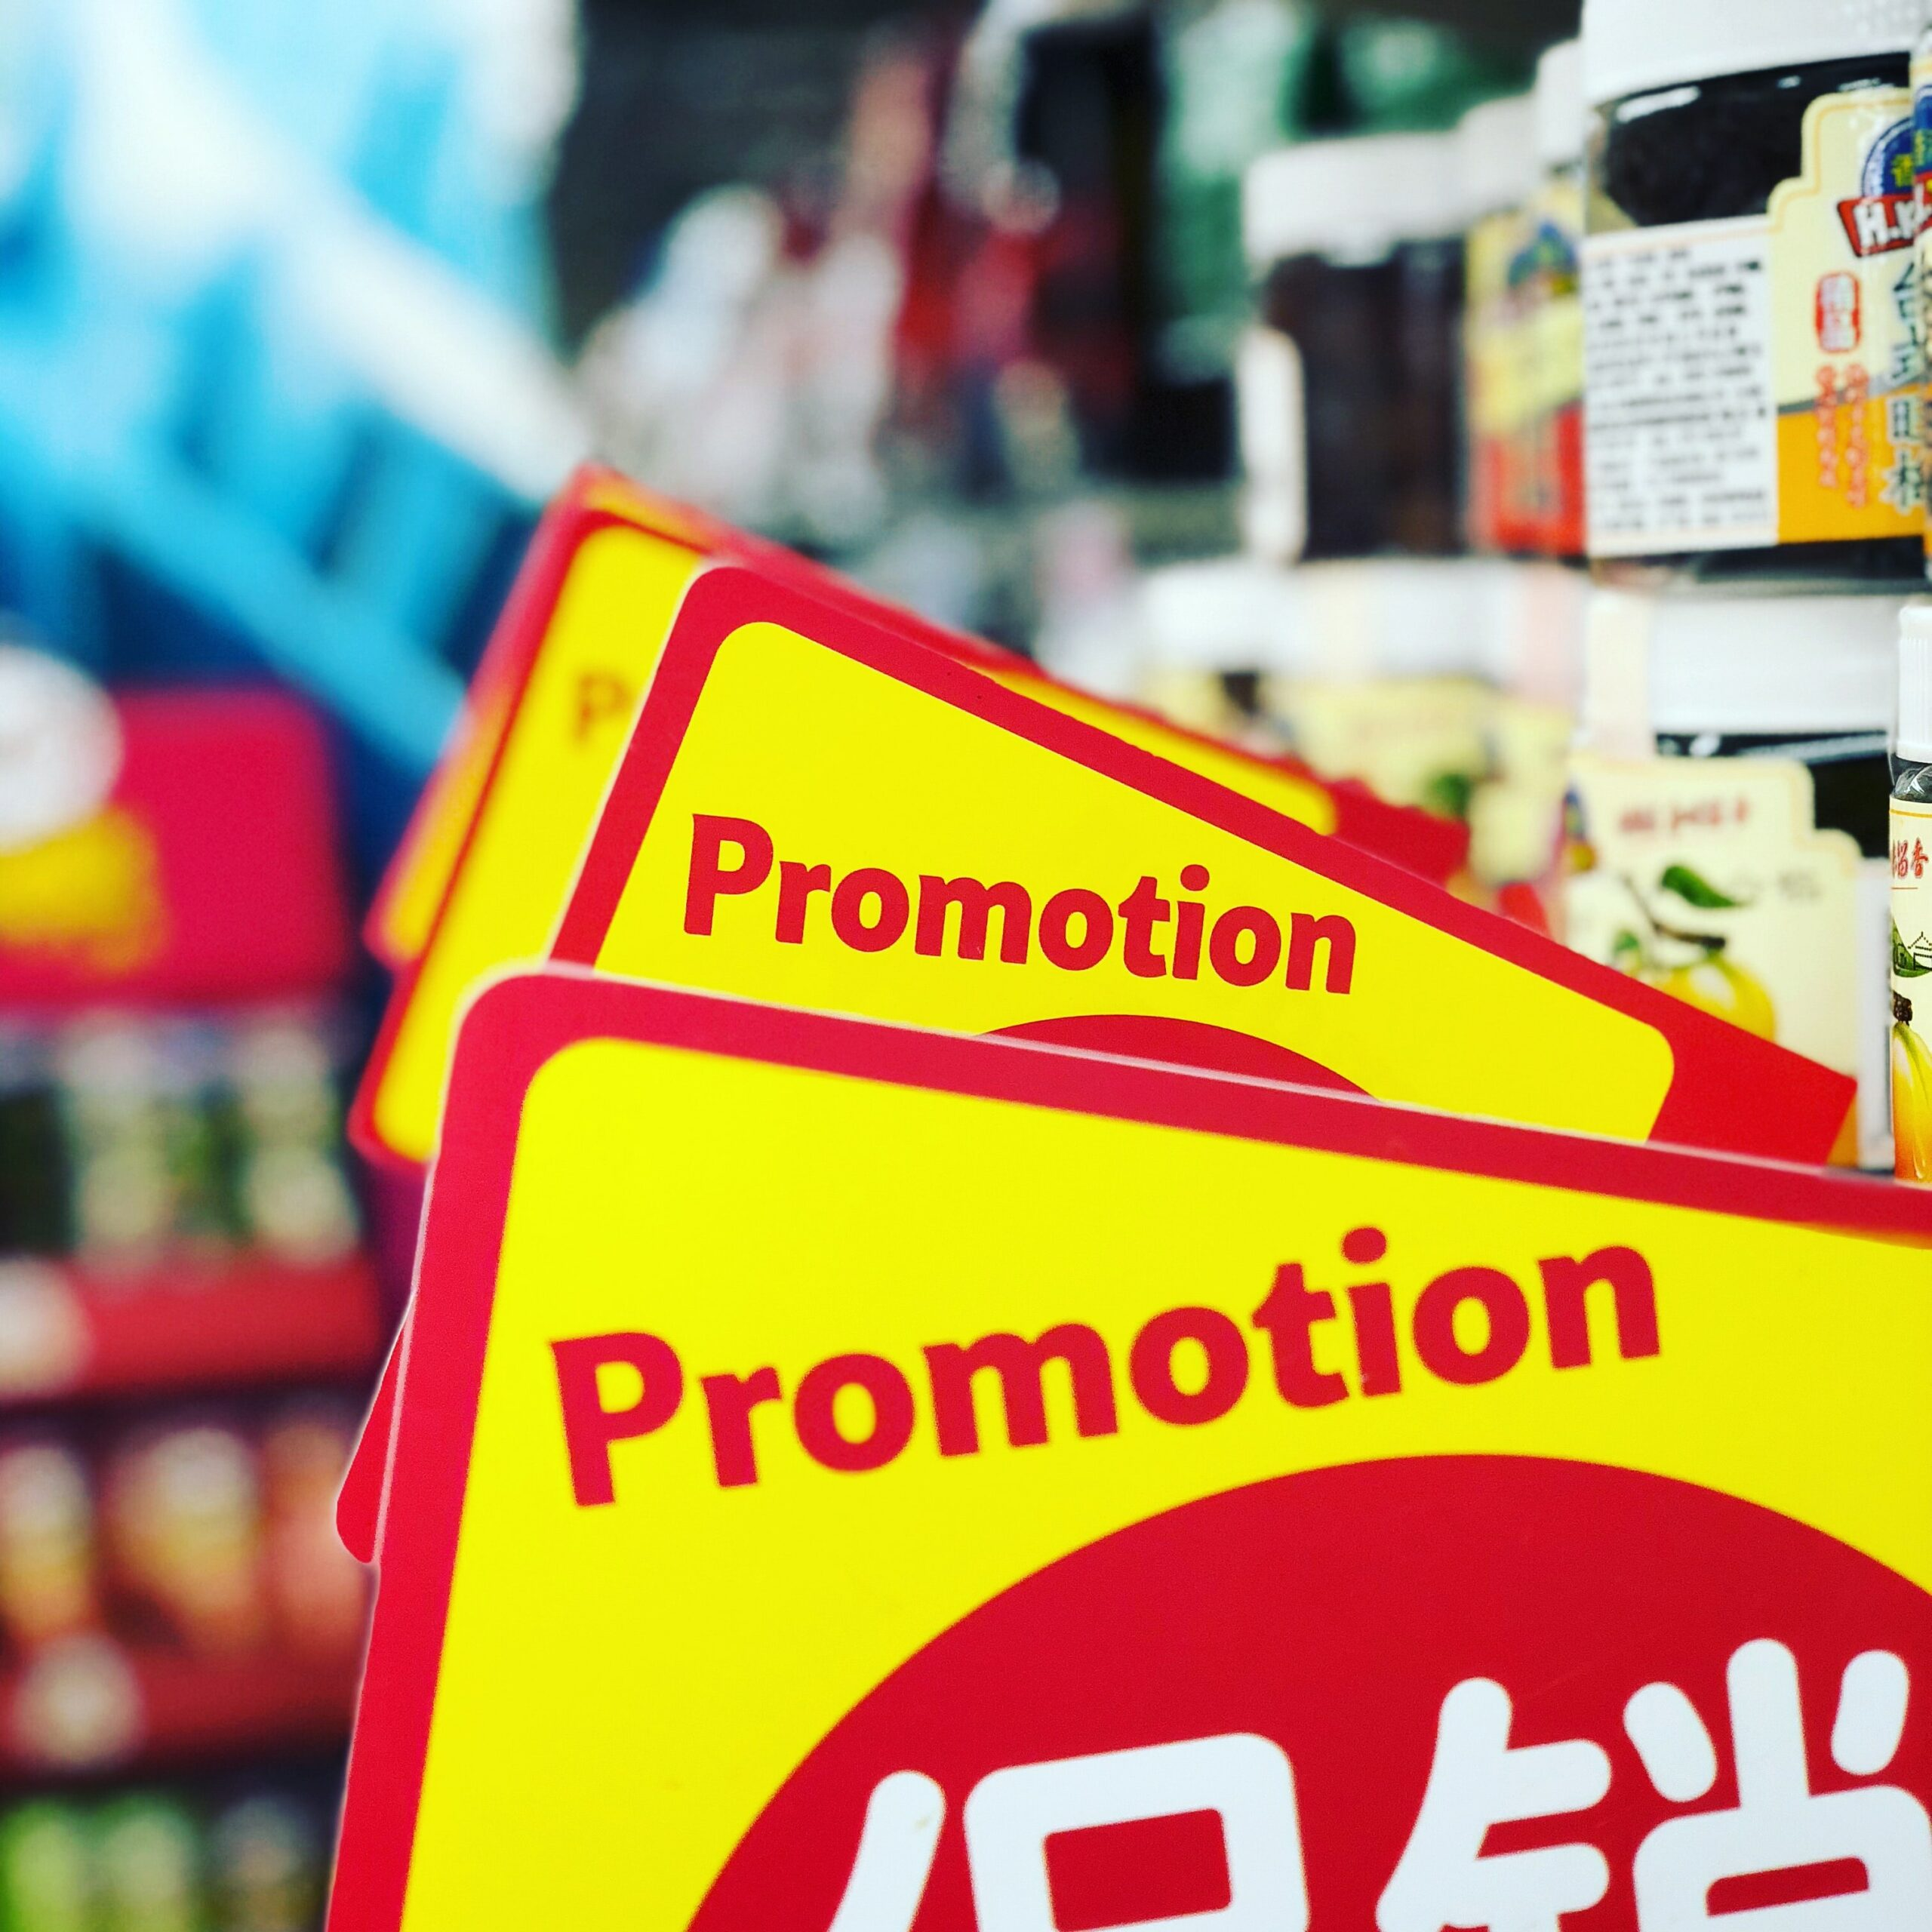 Promotion signs